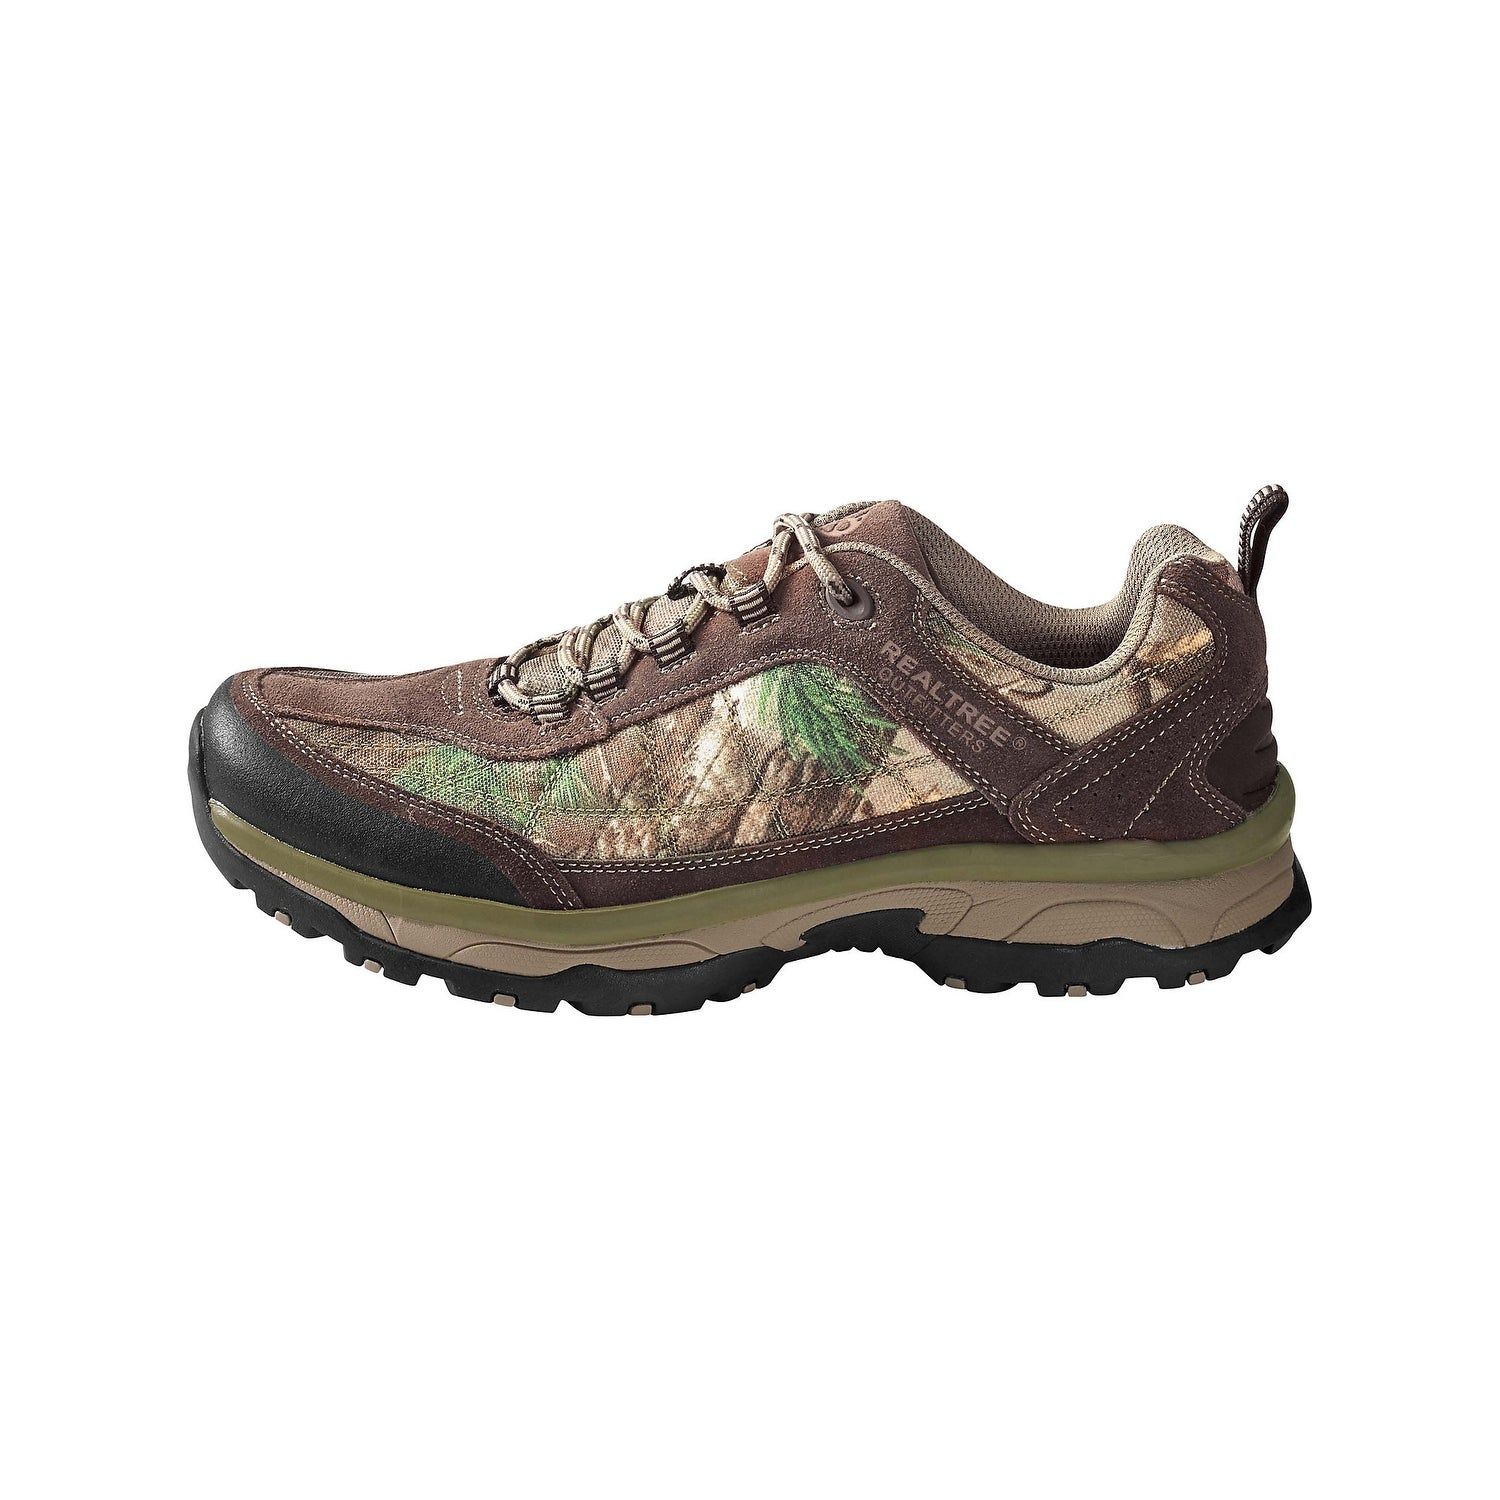 1c5cf60ef019 Shop Legendary Whitetails Men s Clay Athletic Shoes - Brown - Free Shipping  On Orders Over  45 - Overstock - 17696407